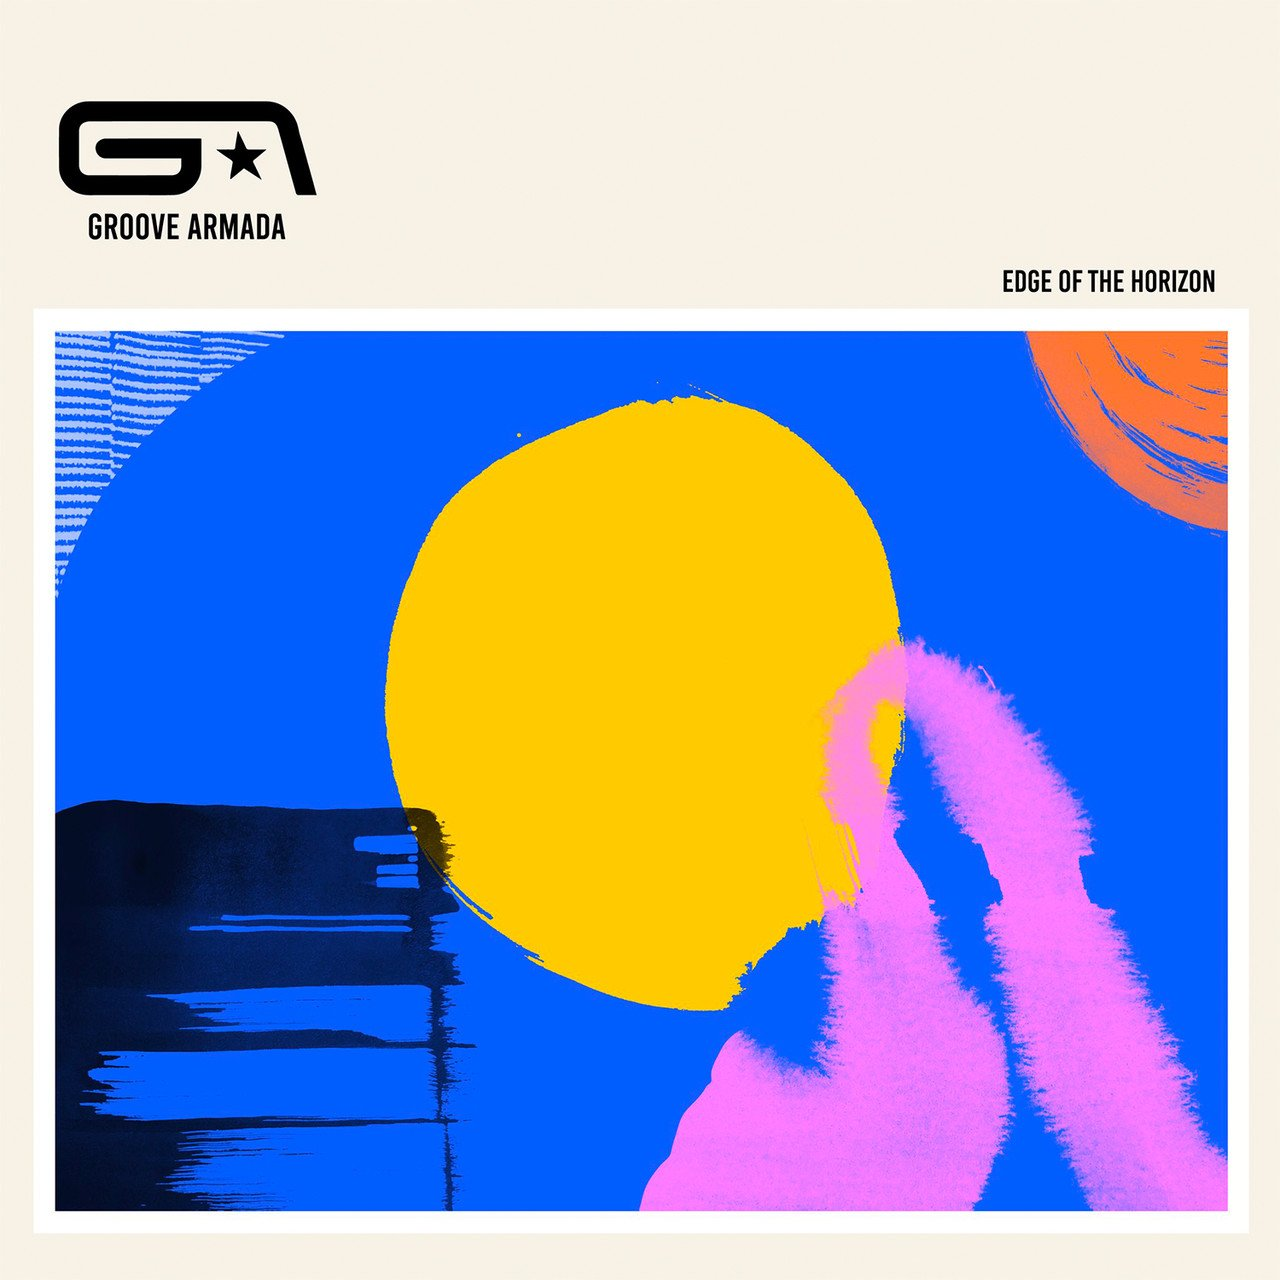 Groove Armada — Edge of the Horizon (BMG Rights Management, 2020)